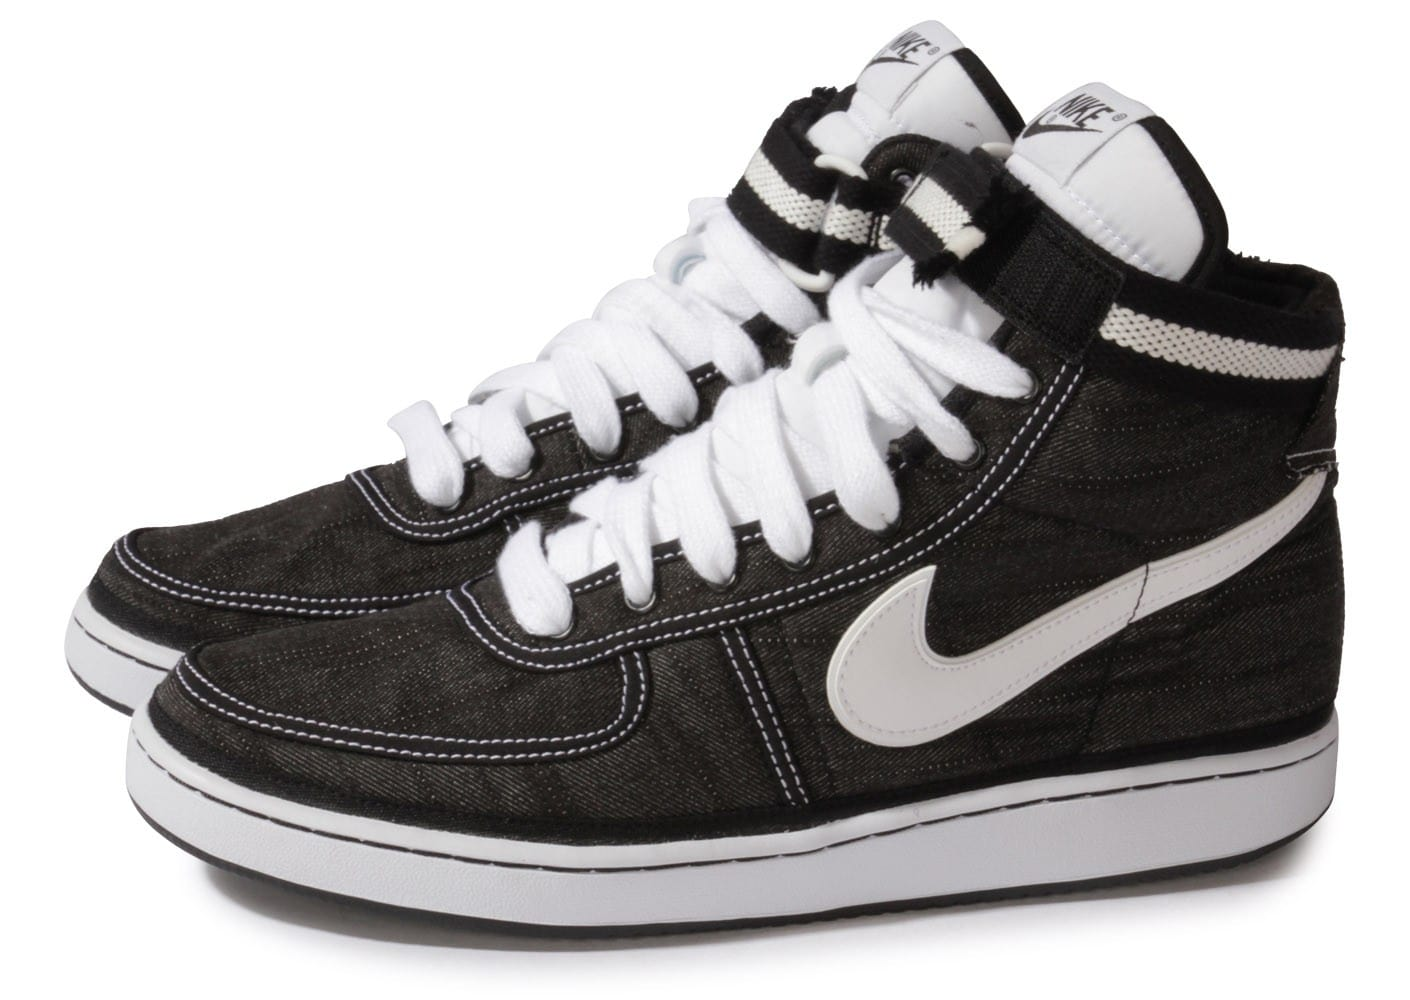 Noire Vandal Supreme High Baskets Homme Chausport Nike Chaussures orBCQdxeW